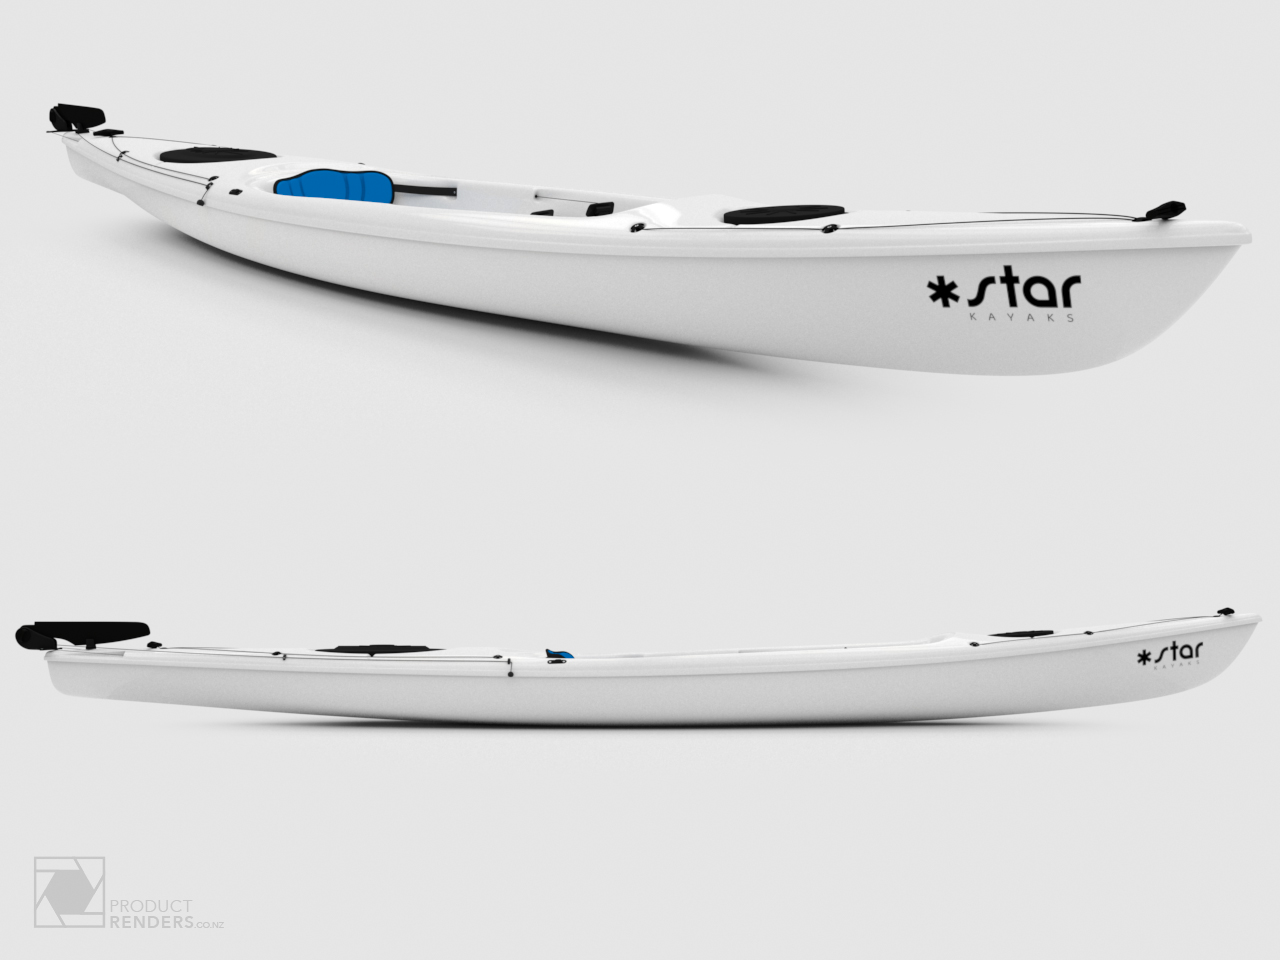 3D render of white Star Kayaks